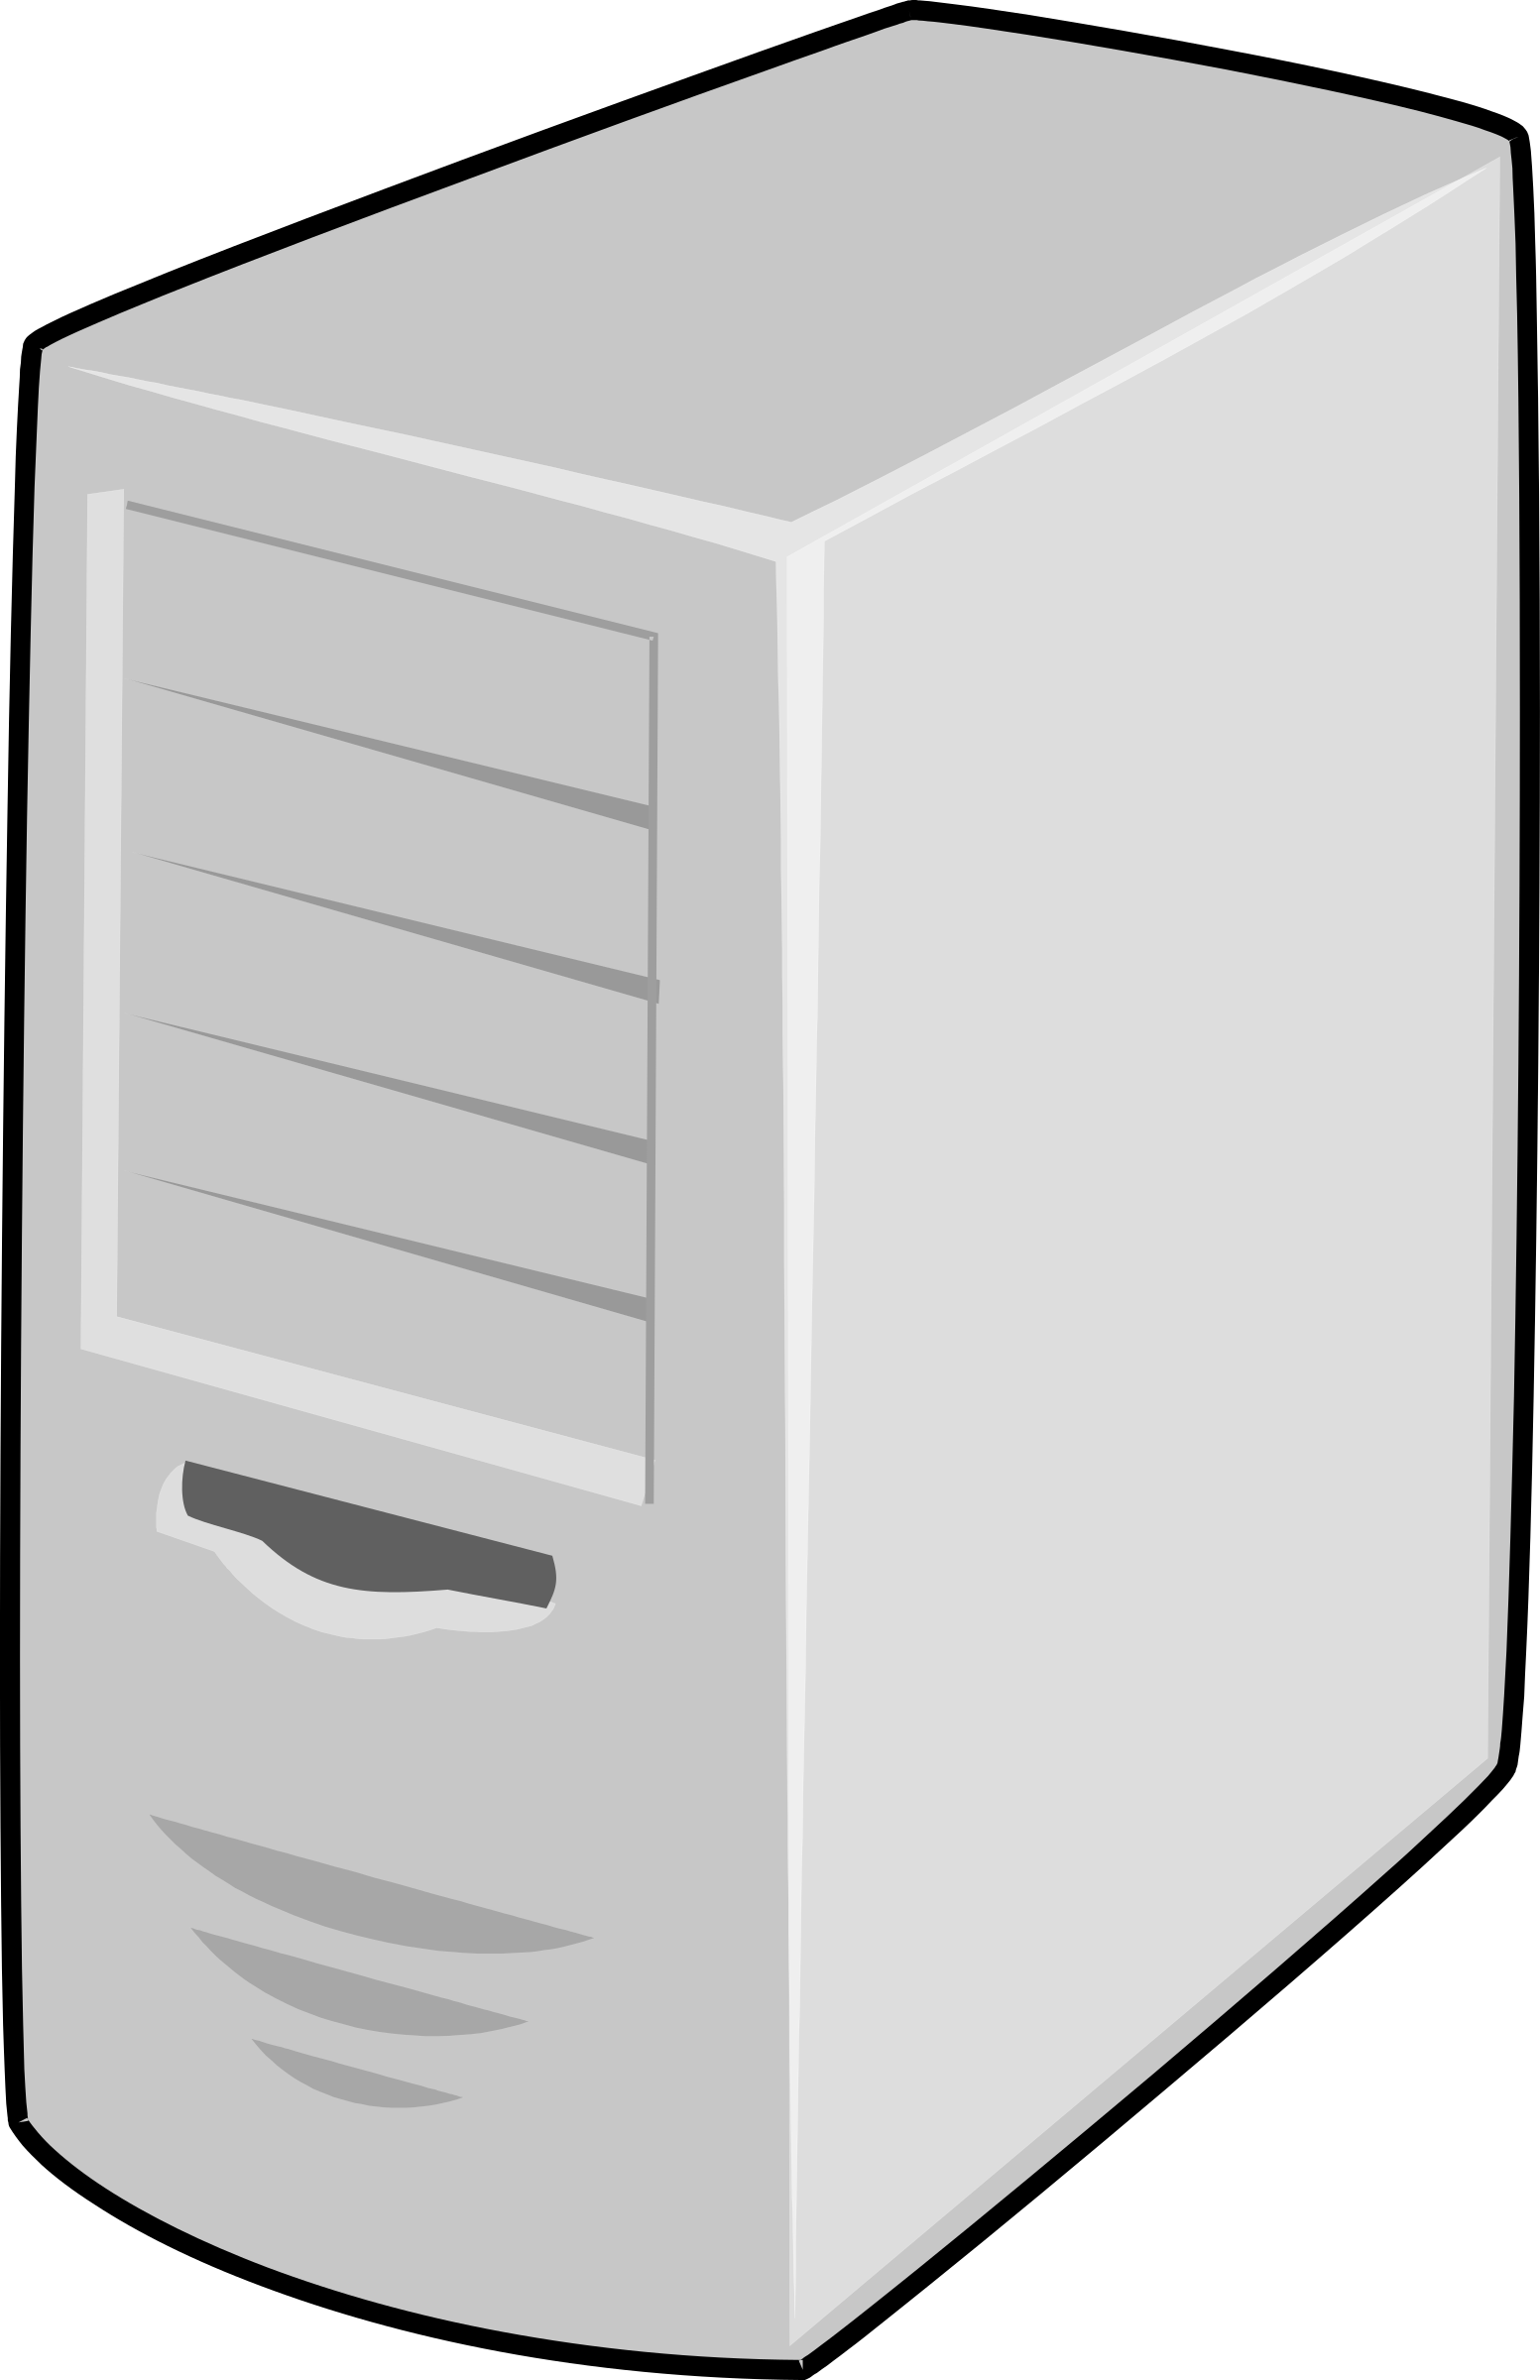 download server free png photo images and clipart freepngimg